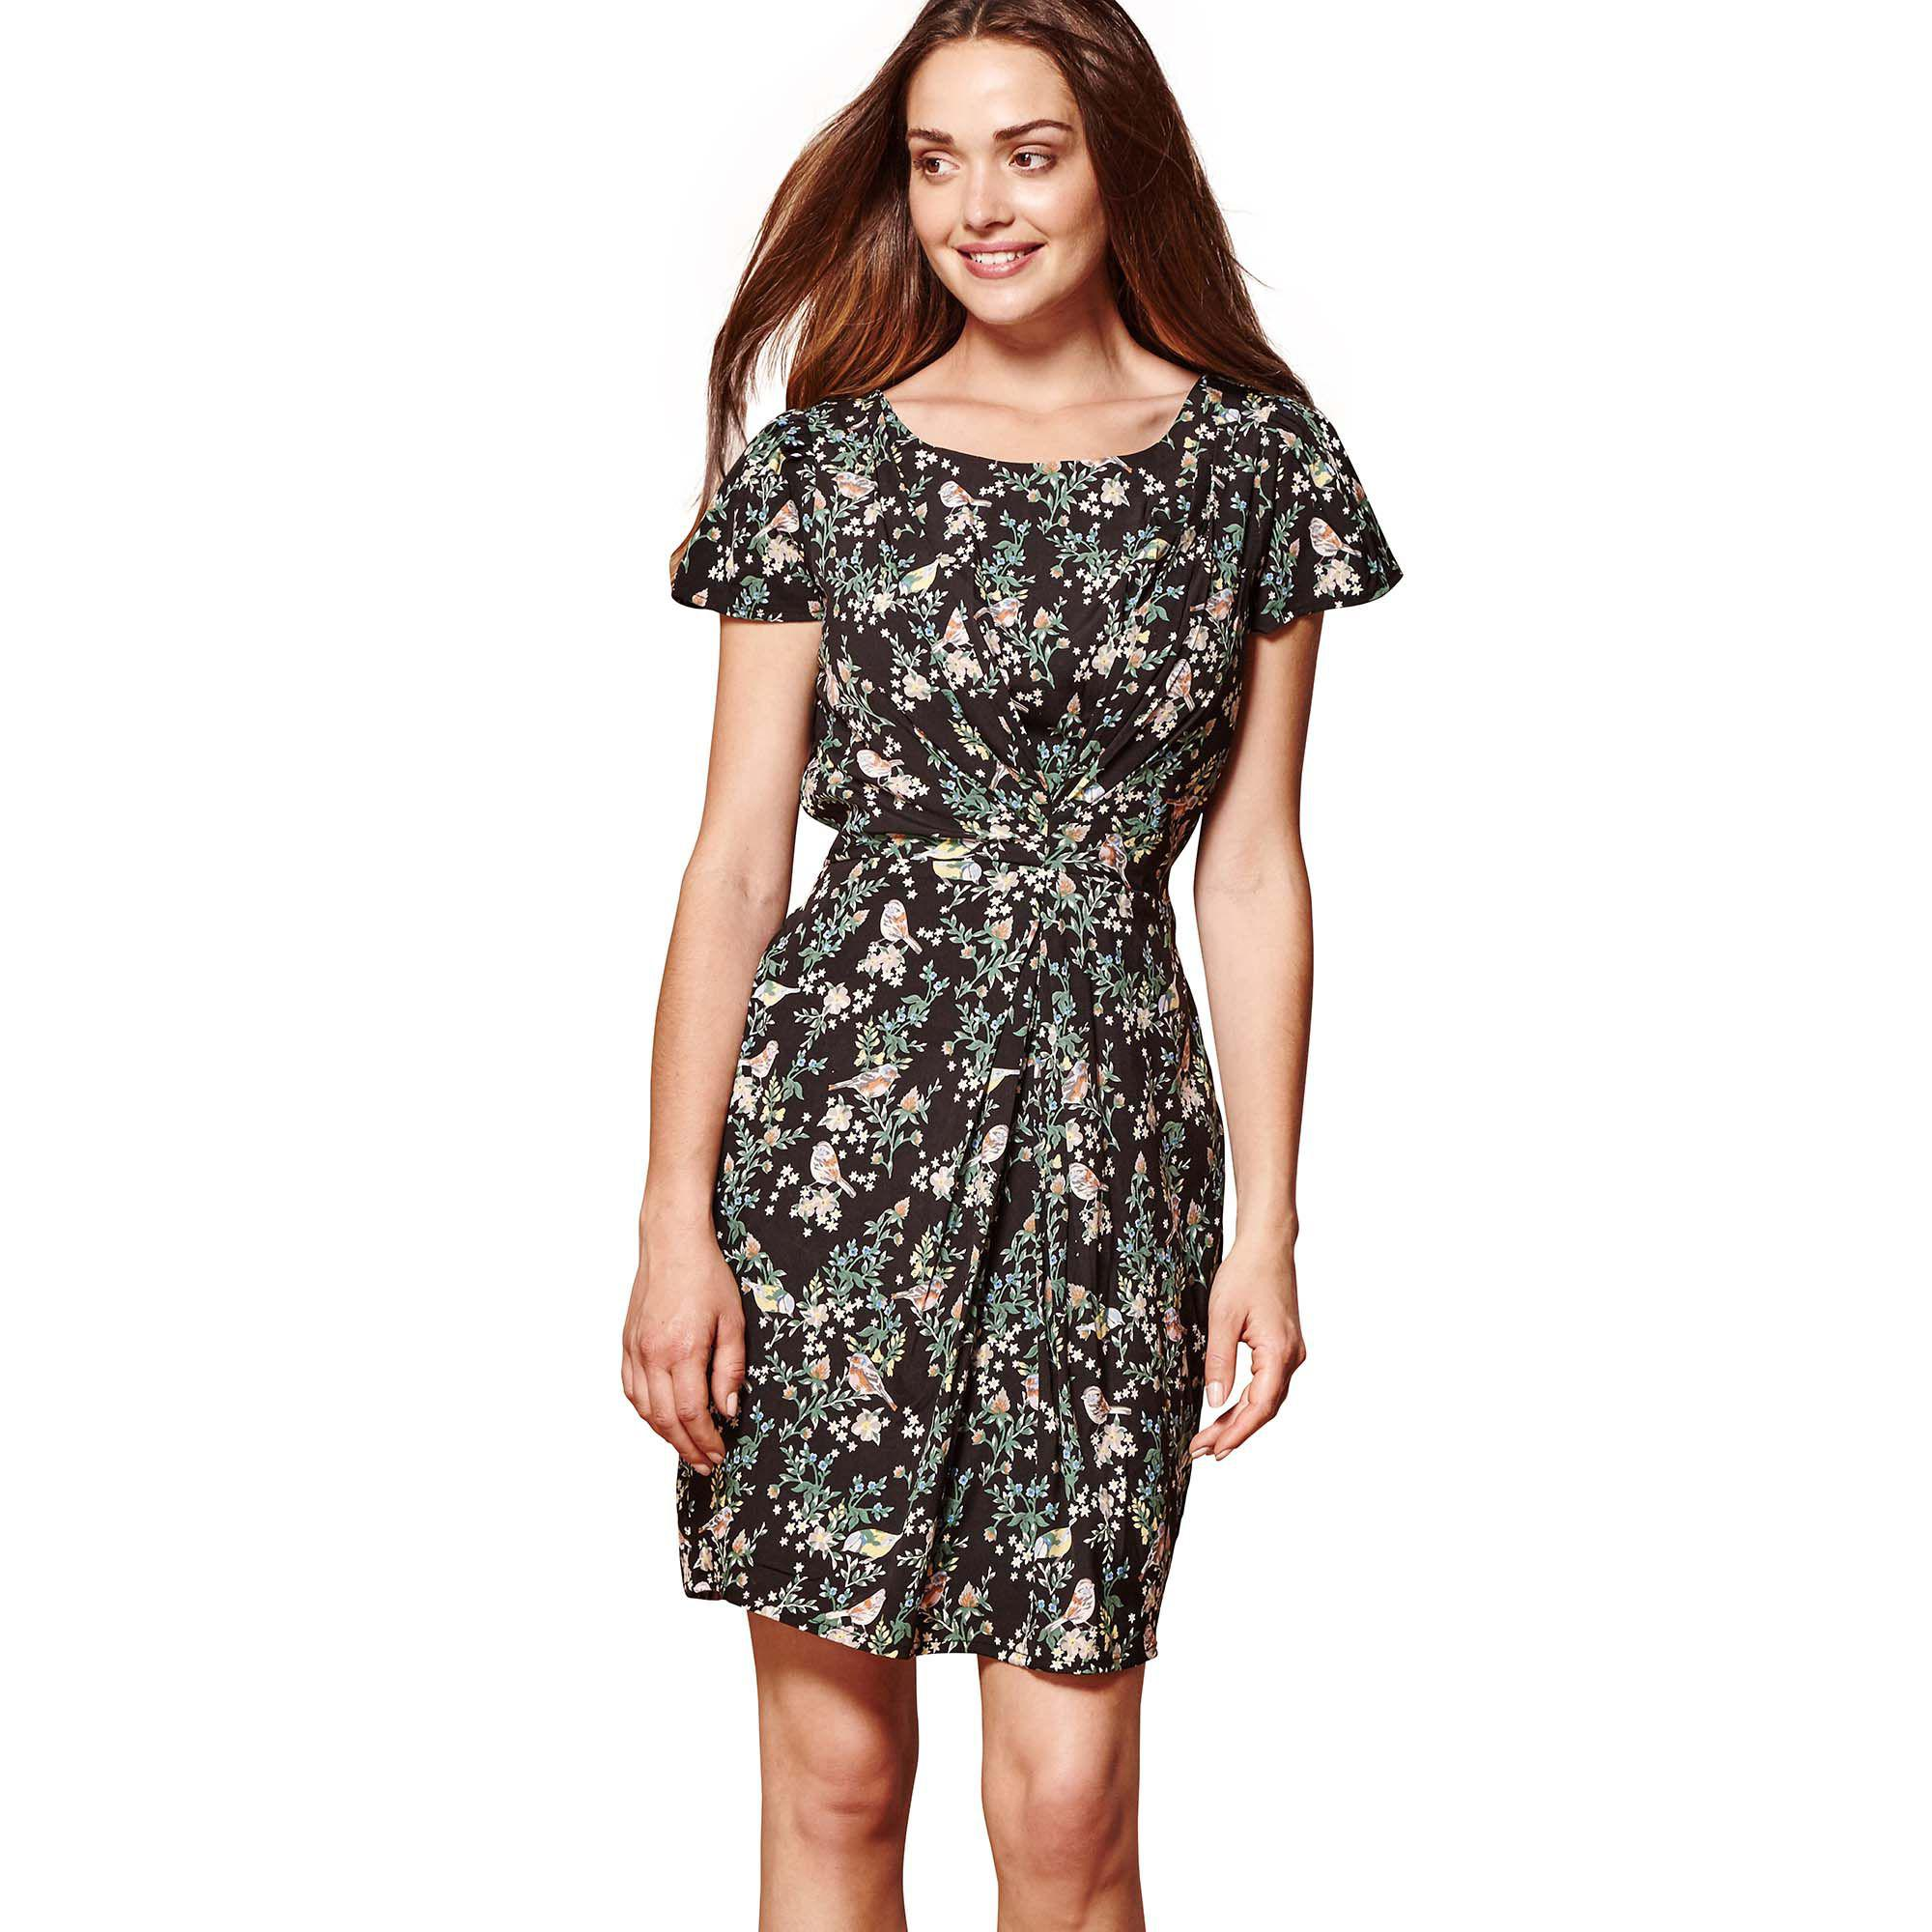 c5ce370121a Yumi  Black Floral Print  indigo  Pleated Tea Dress in Black - Lyst